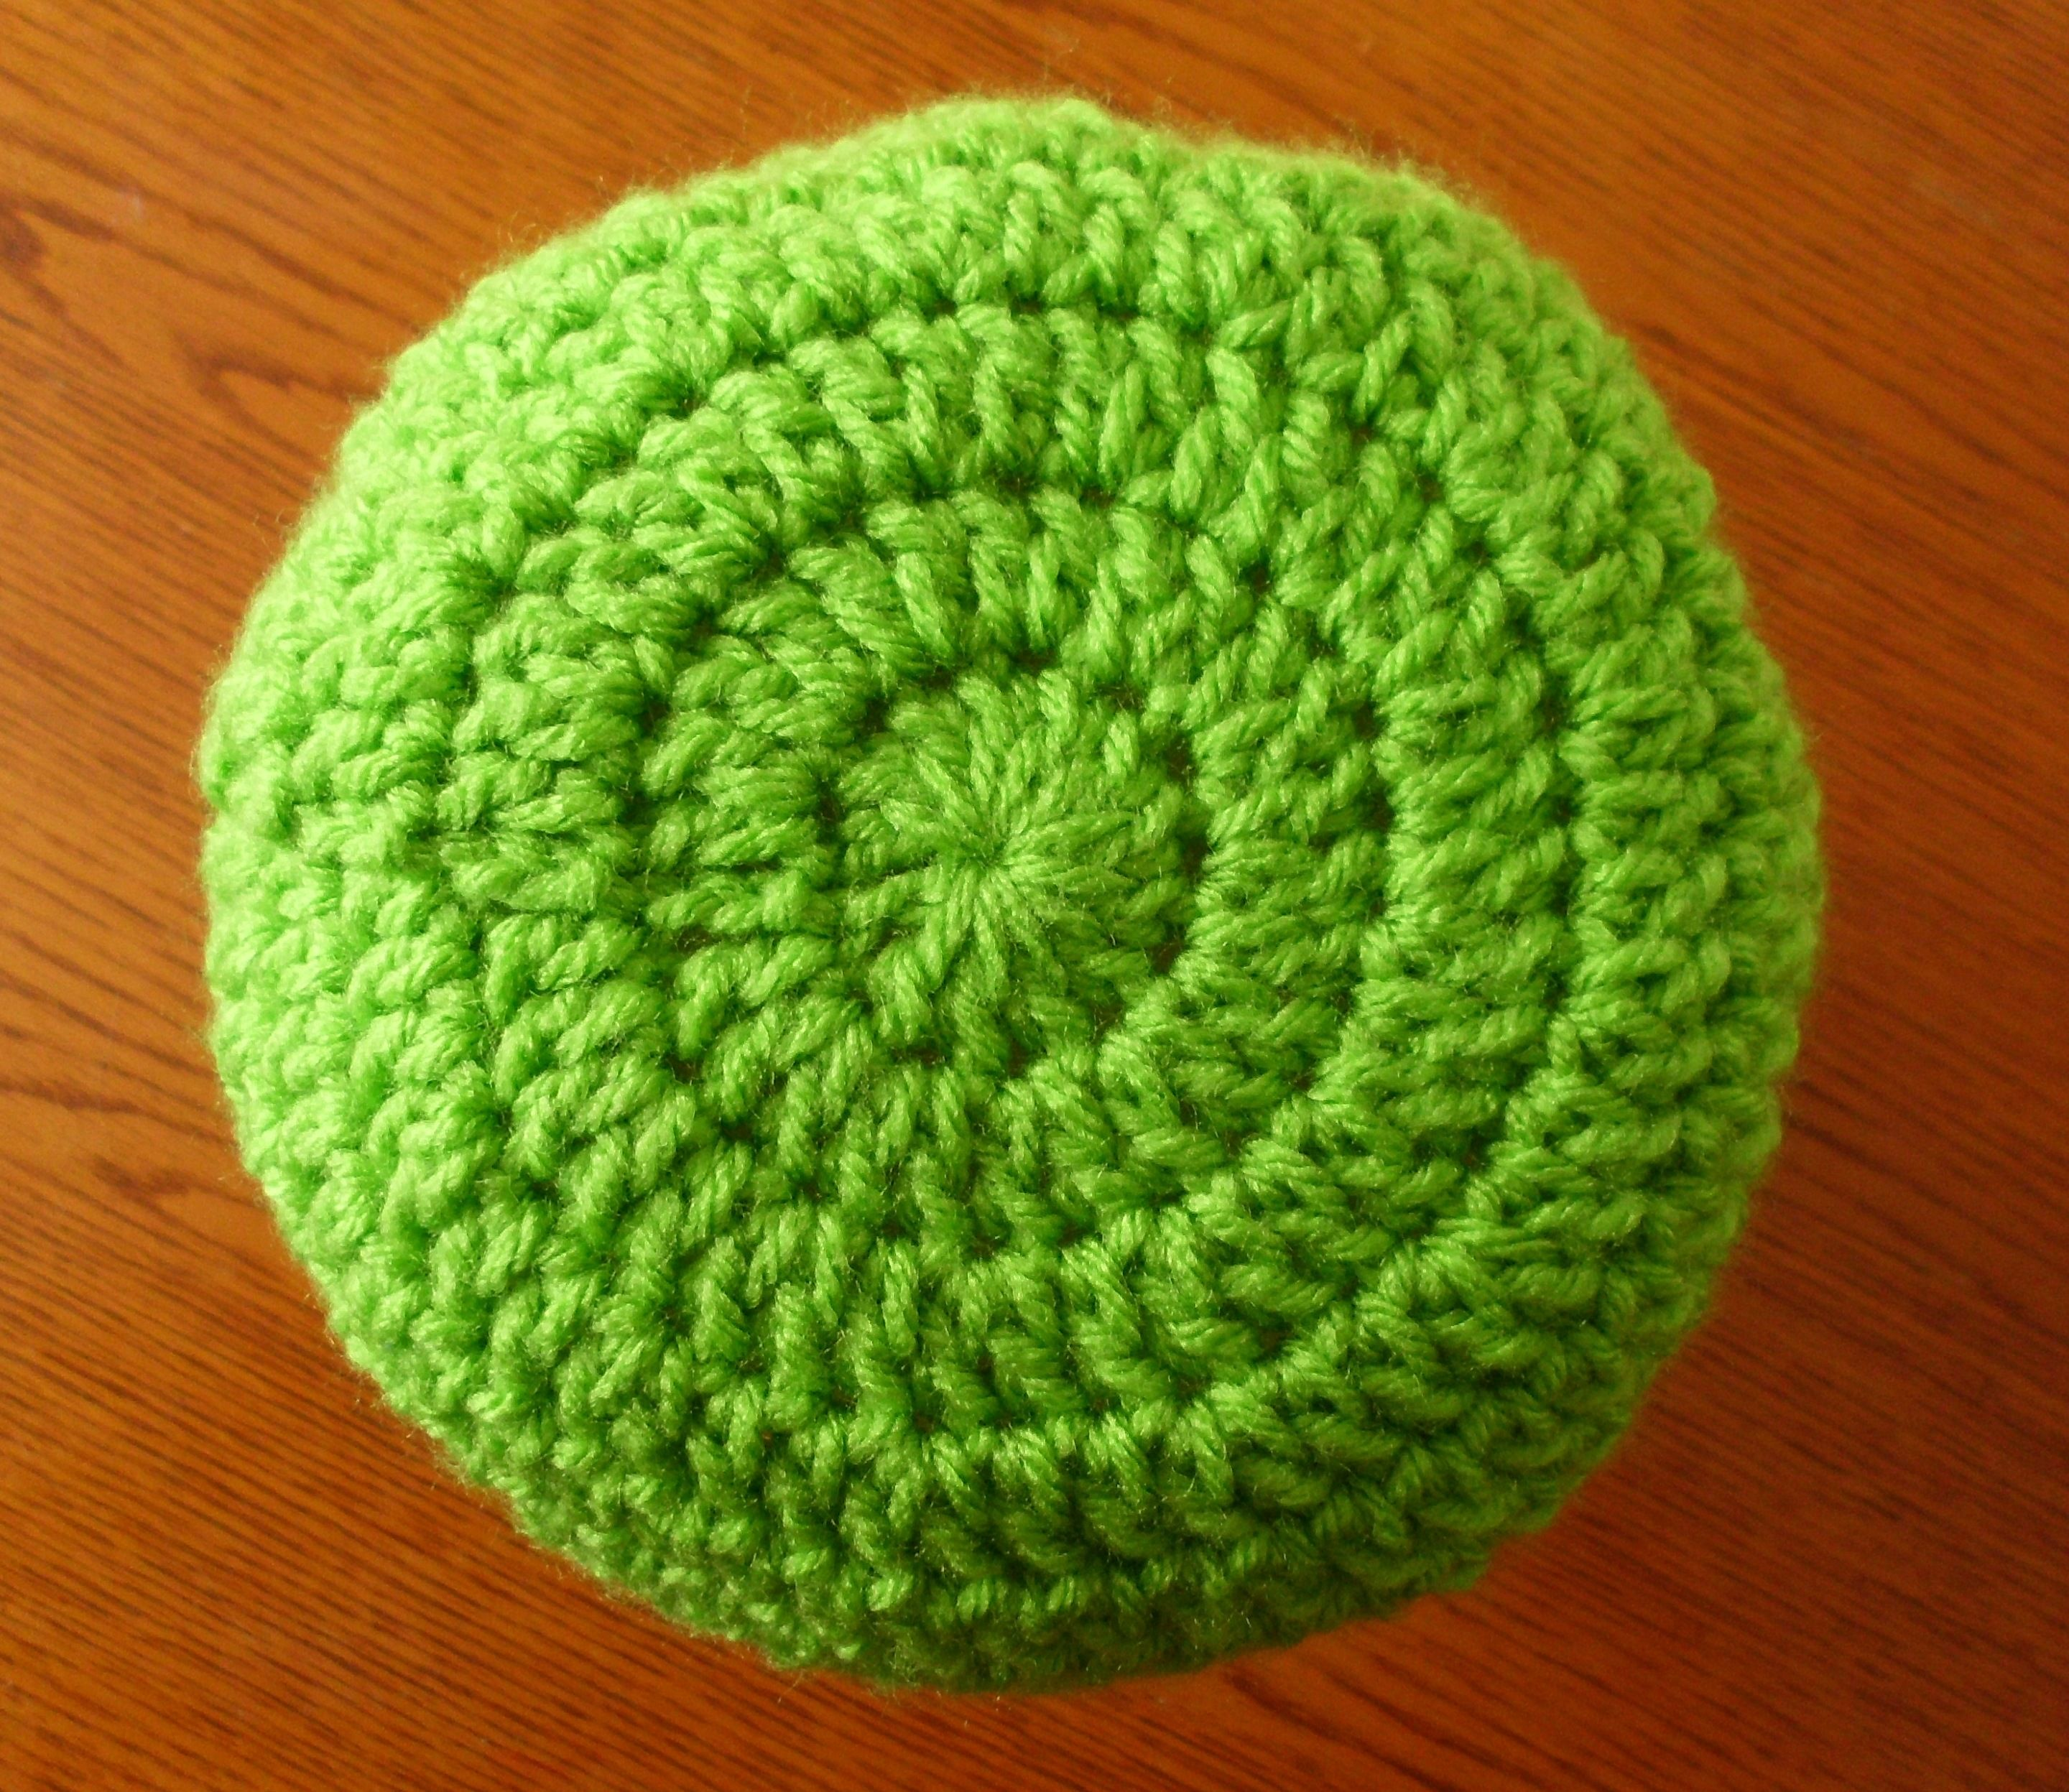 Crocheting In A Circle : In a circle... Crochet Pinterest